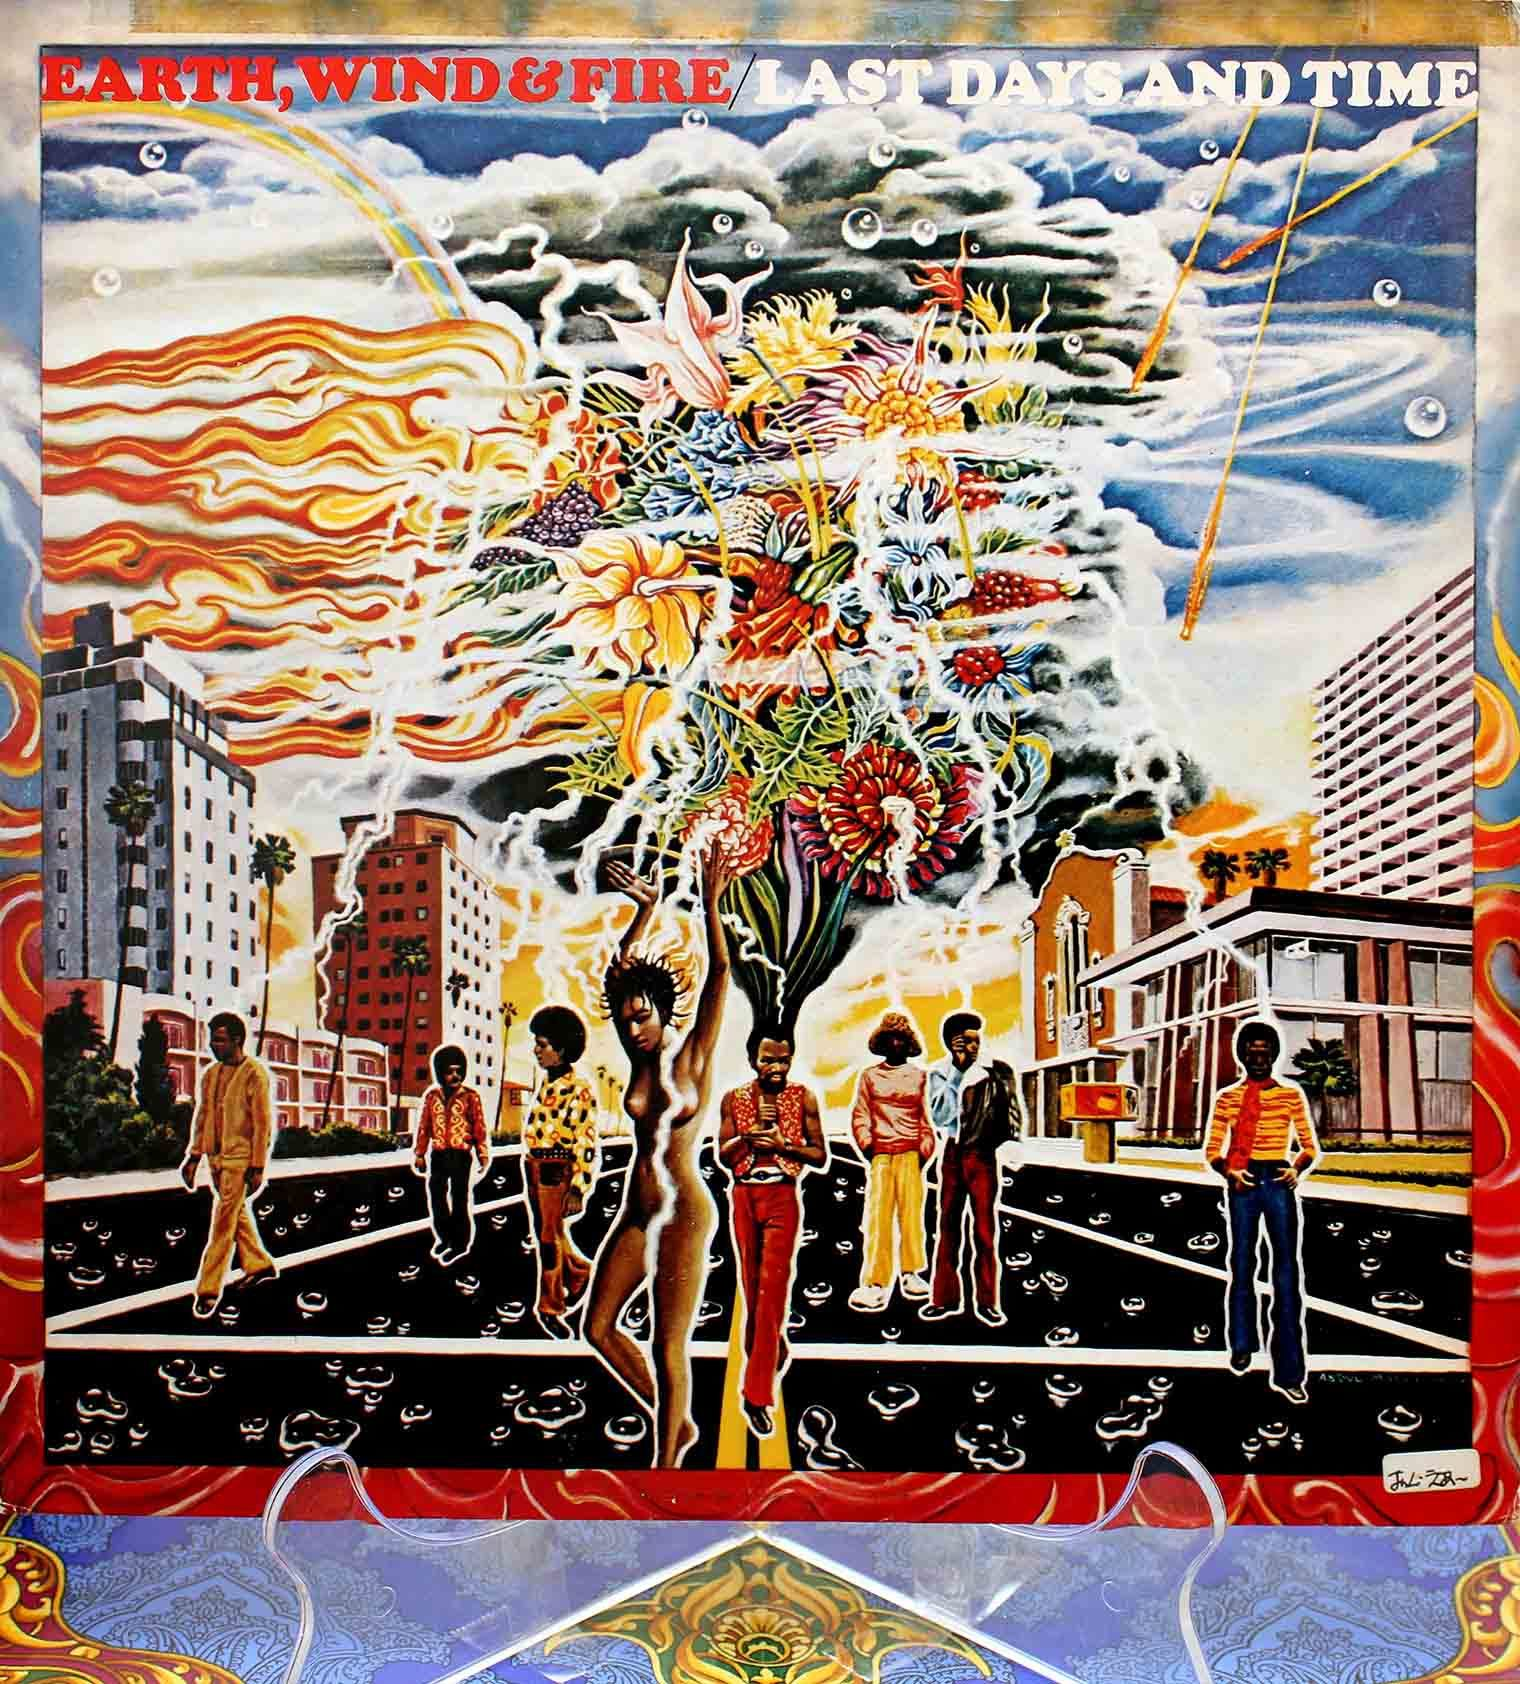 Earth, Wind Fire - Last Days And Time 01